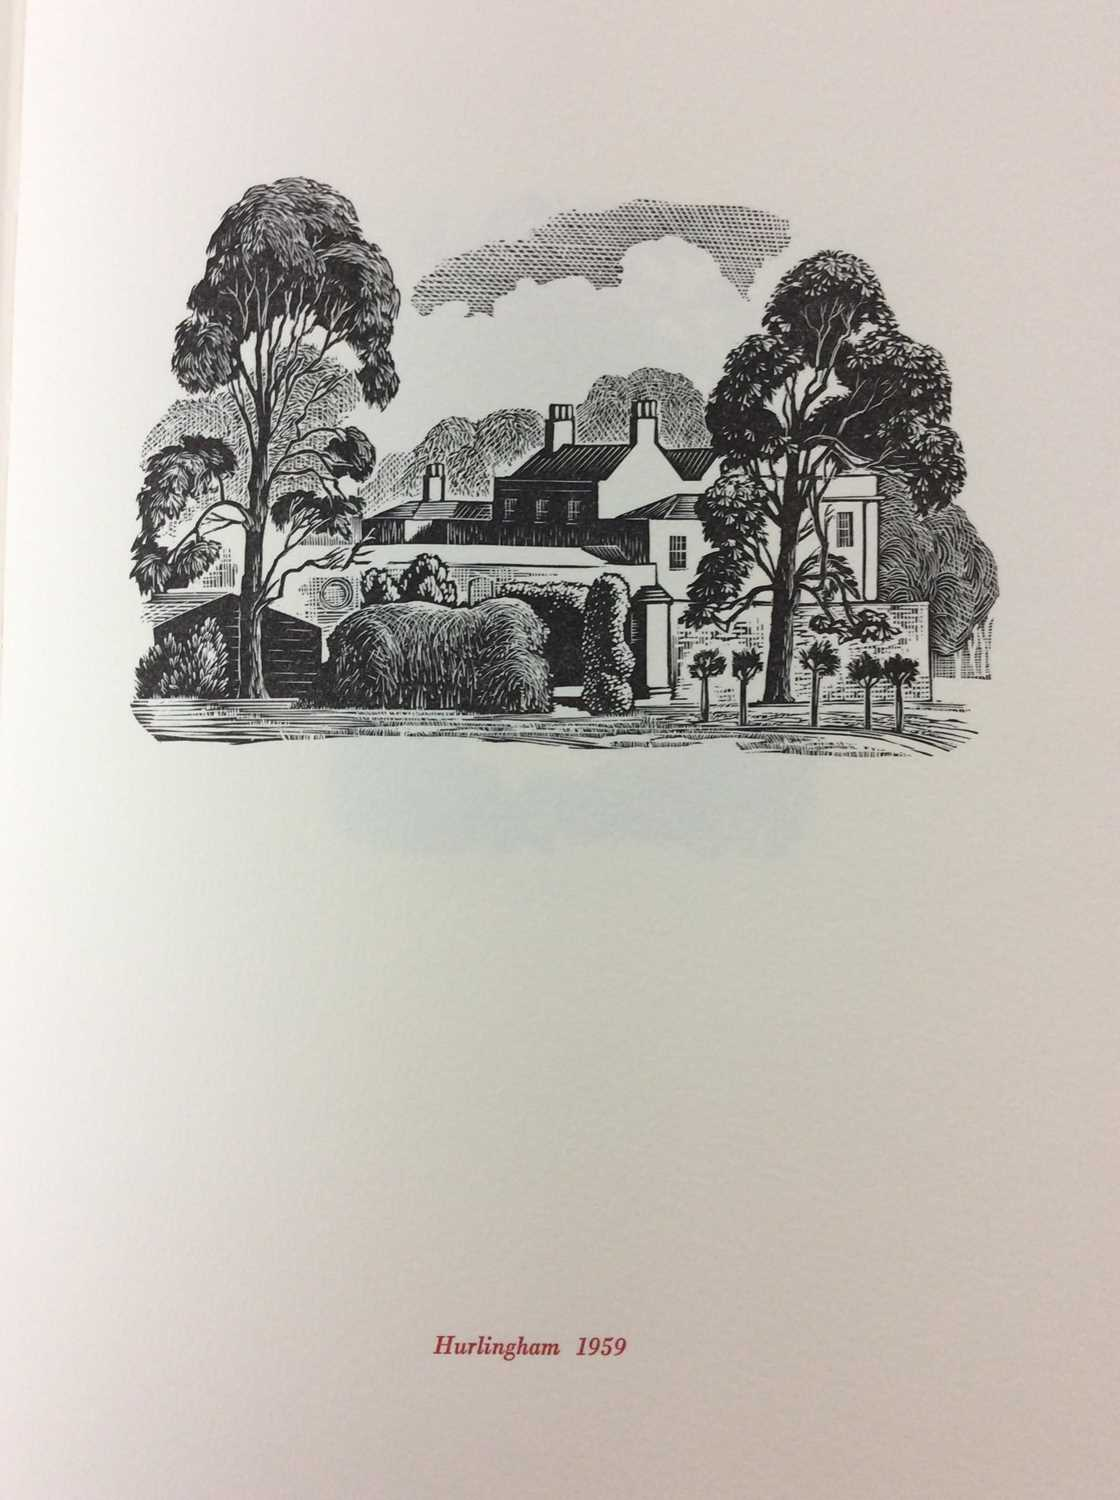 Mary Skempton - The Wood Engravings of Mary Skempton limited edition of 150 - Image 5 of 7